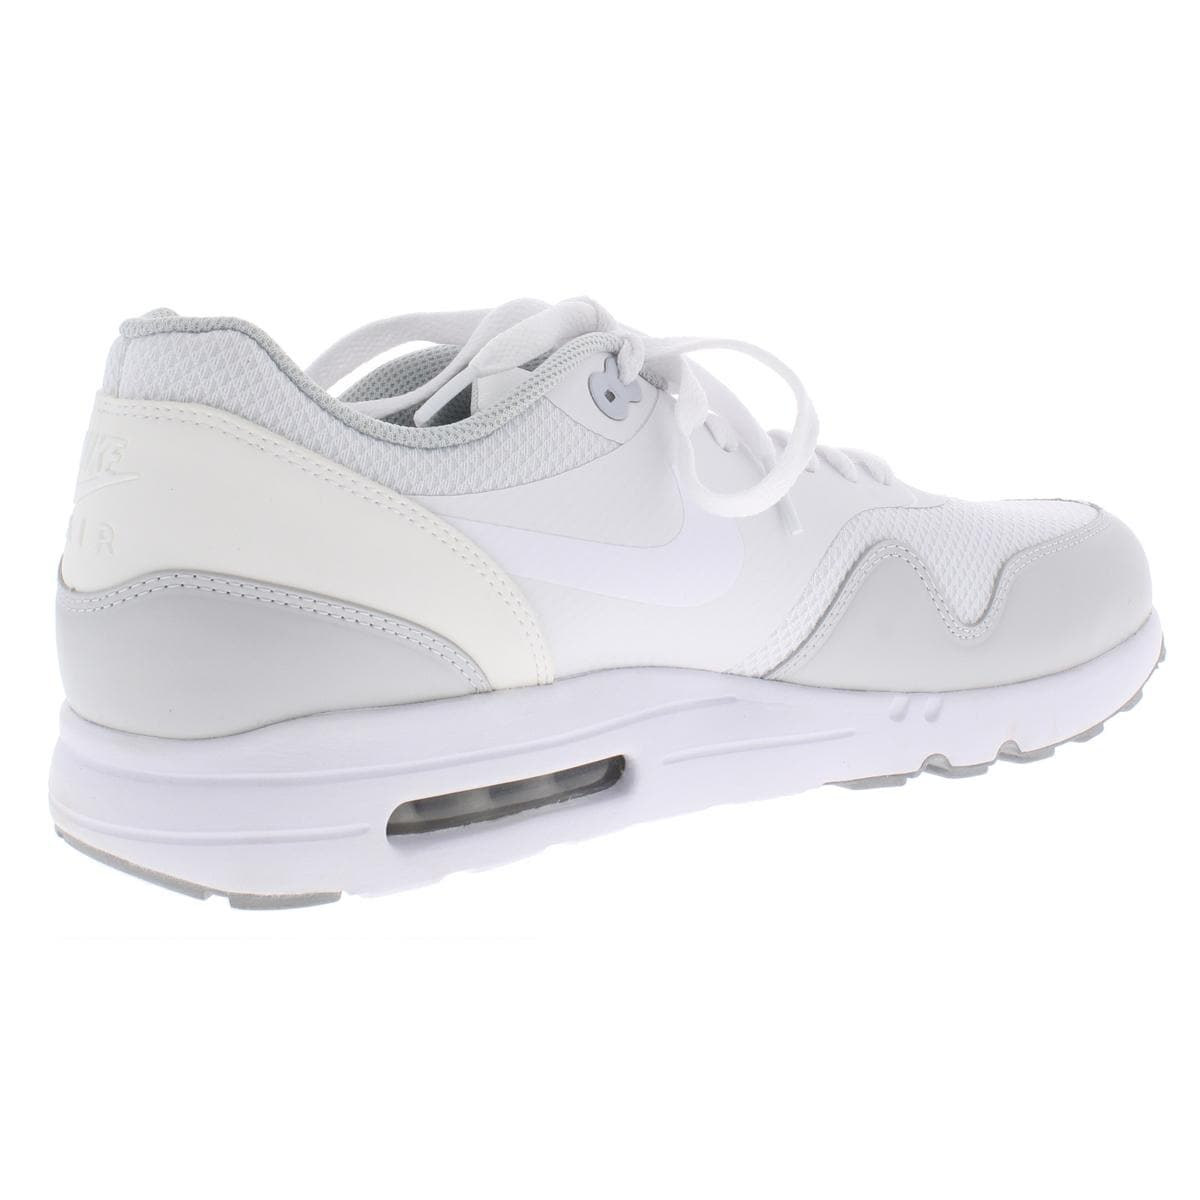 Nike Mens Air Max 1 Ultra 2.0 Essential Athleisure Lifestyle